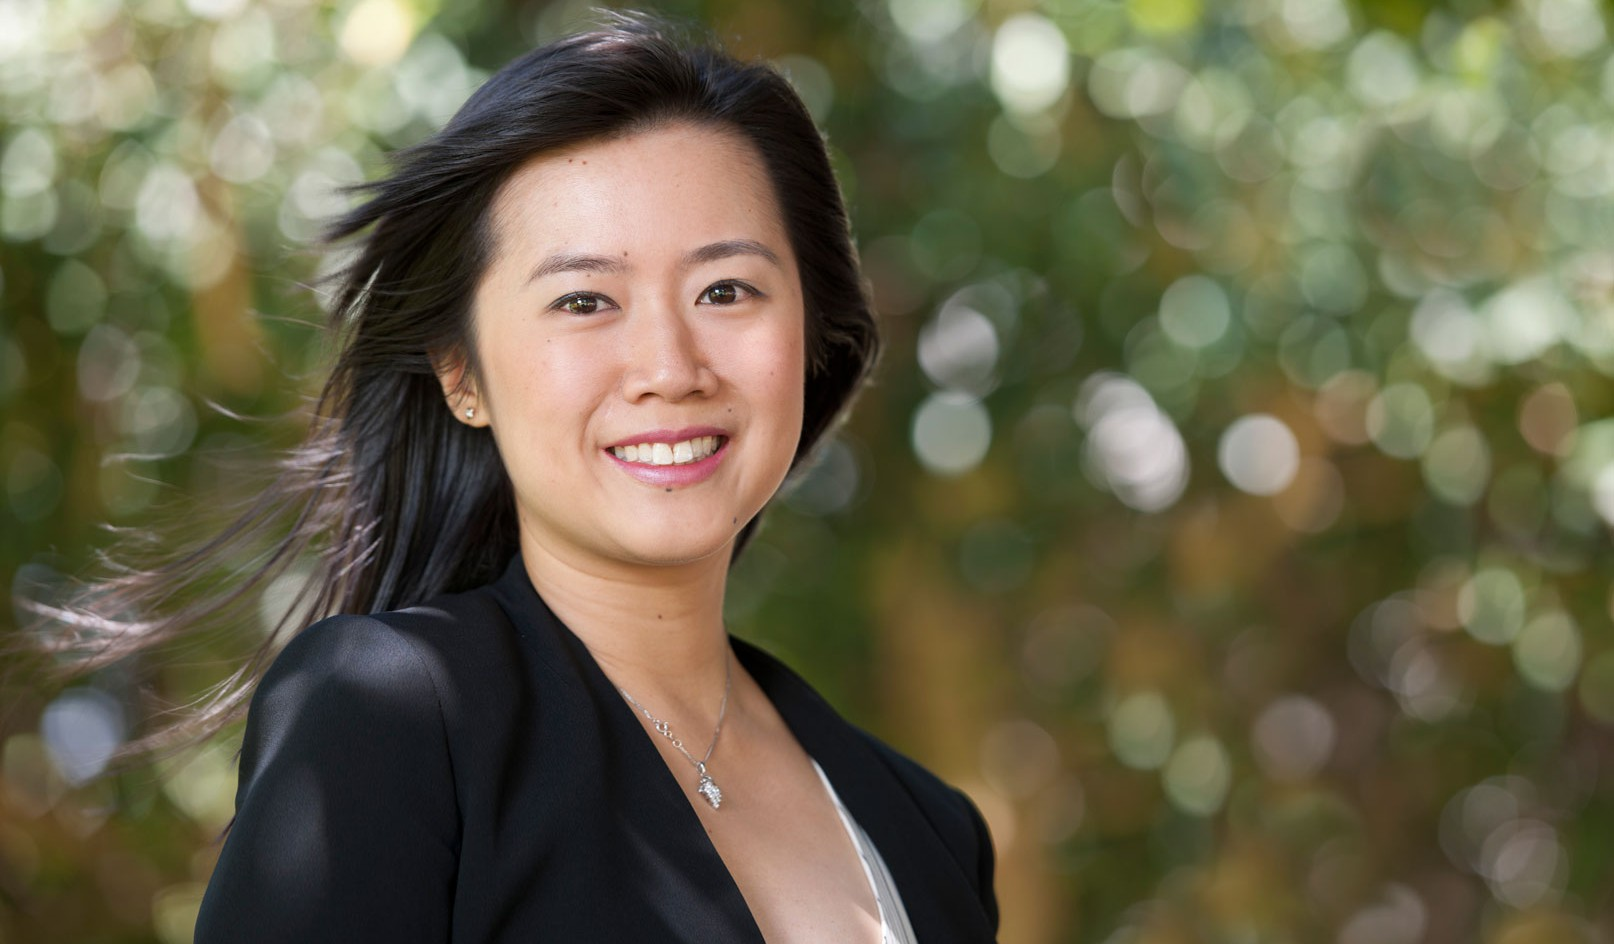 <div>Corporate</div><div> <a href='https://nedmeldrum.com.au/project/aurecon-corporate-portraits-anita-wong/'>View Series</a></div>